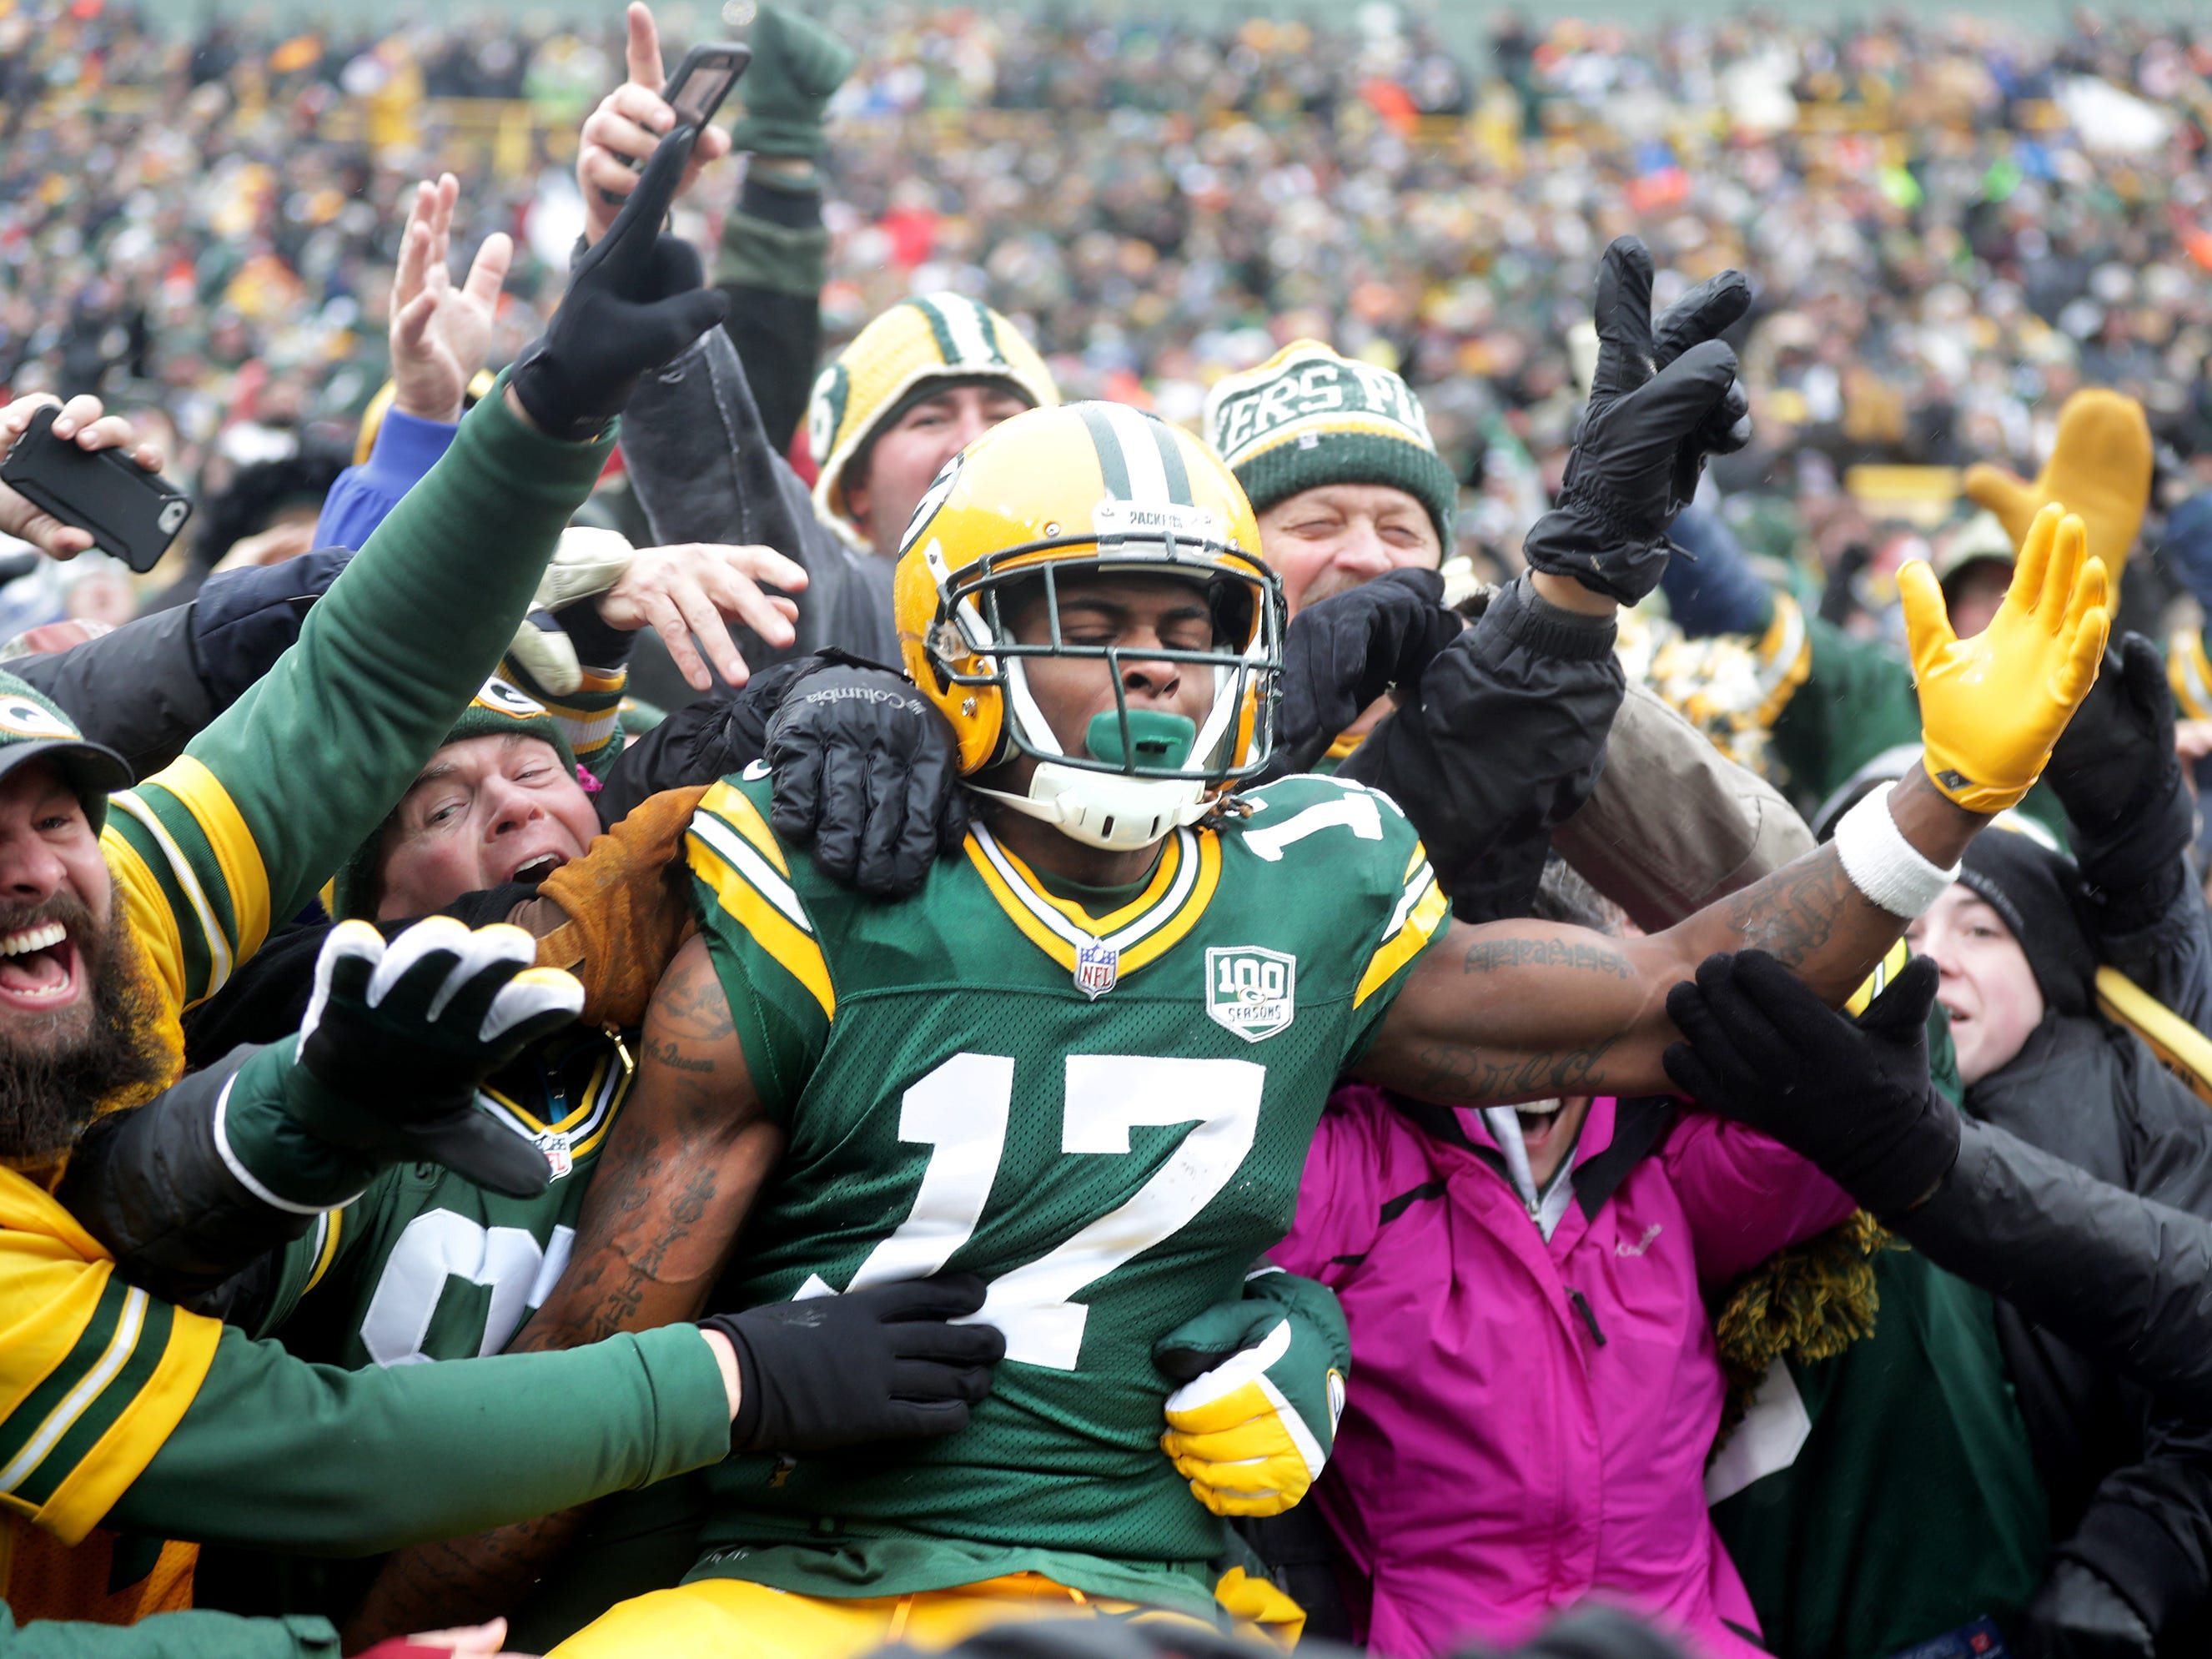 Green Bay Packers wide receiver Davante Adams celebrates an second quarter, fourth and four touchdown reception against the Arizona Cardinals during their football game on Sunday, December 2, 2018, at Lambeau Field in Green Bay, Wis. Wm. Glasheen/USA TODAY NETWORK-Wisconsin.